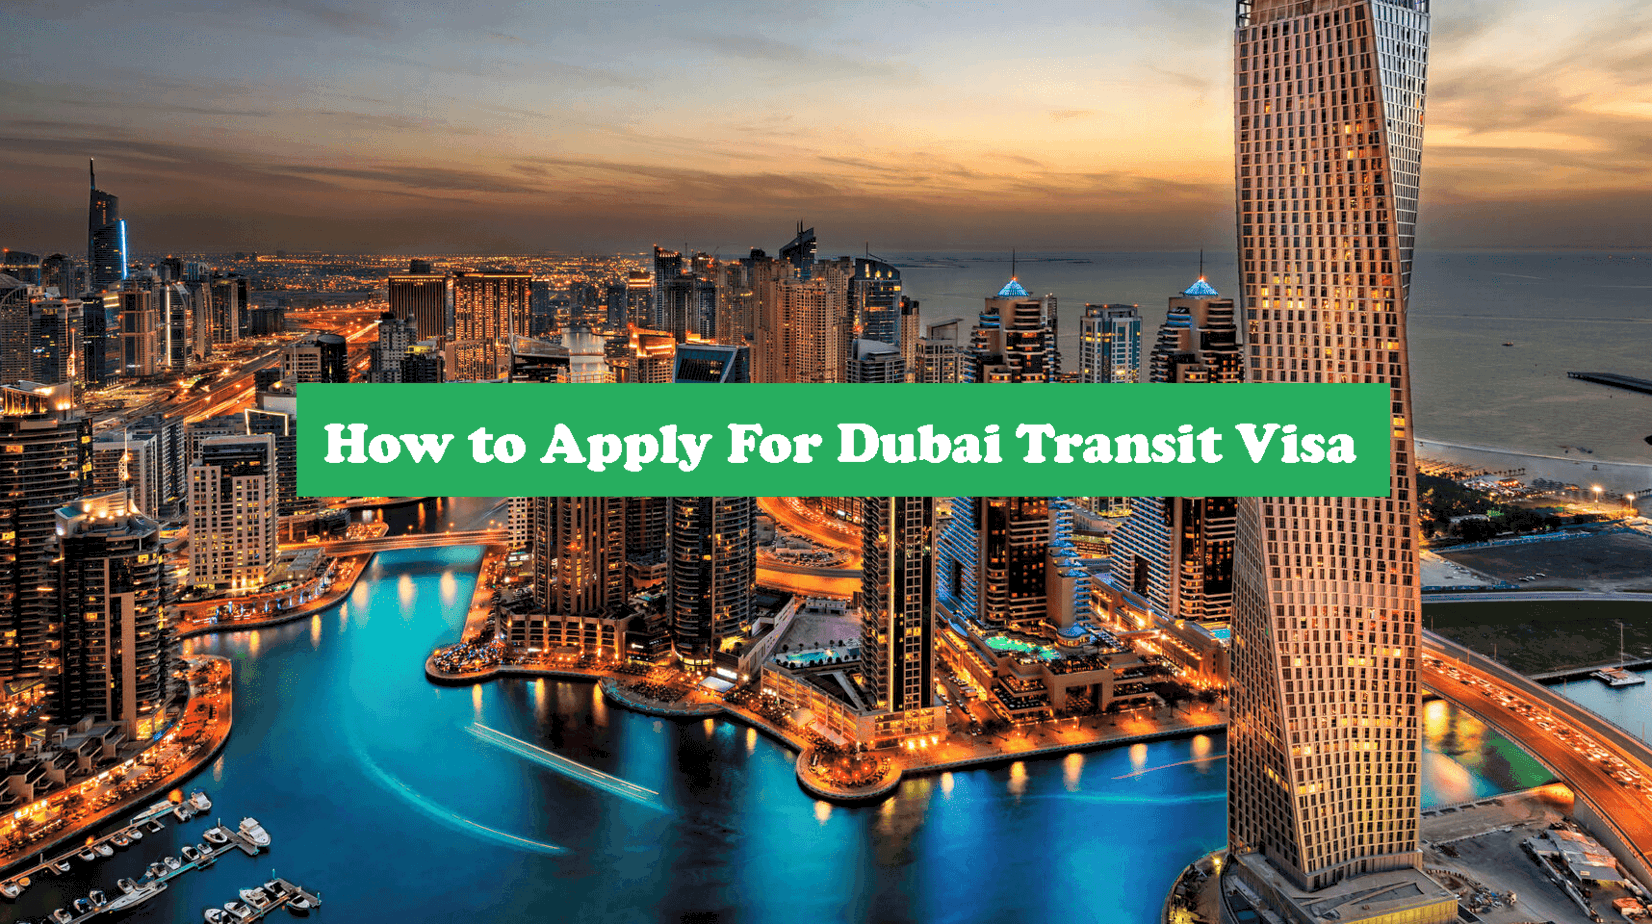 How to Apply for Dubai Transit Visa